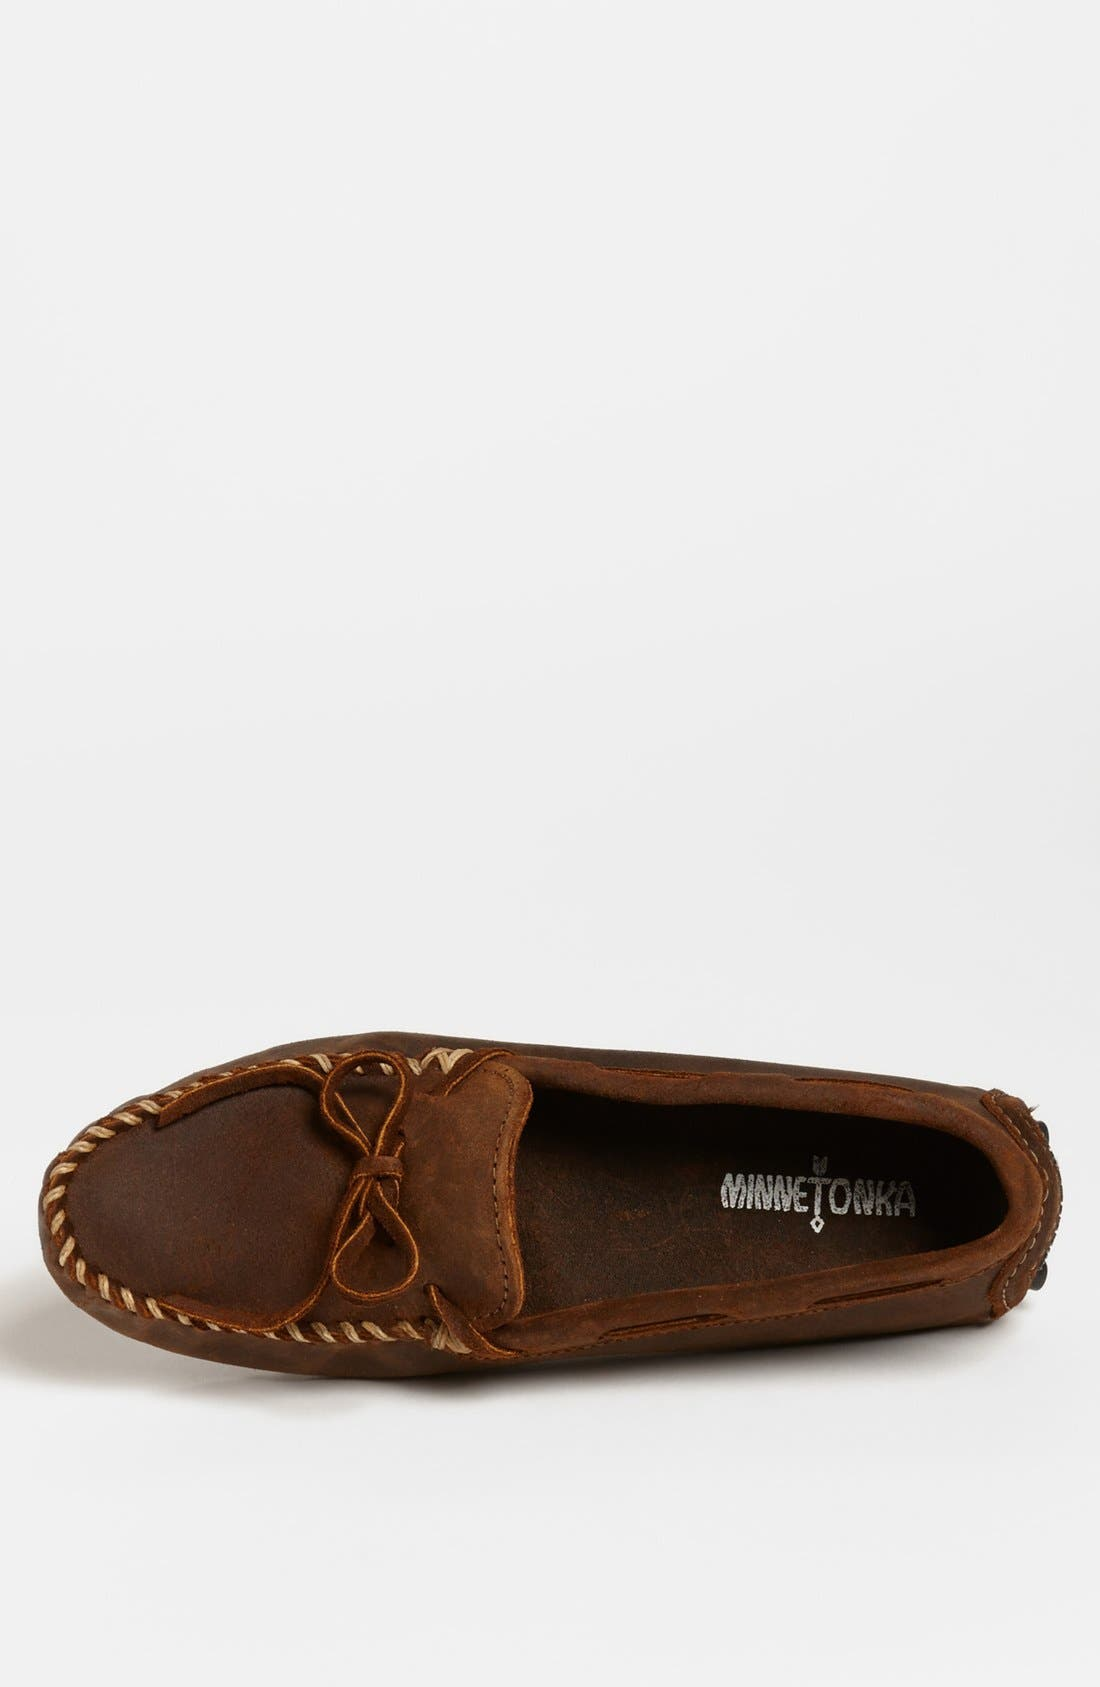 MINNETONKA, Suede Driving Shoe, Alternate thumbnail 4, color, BROWN